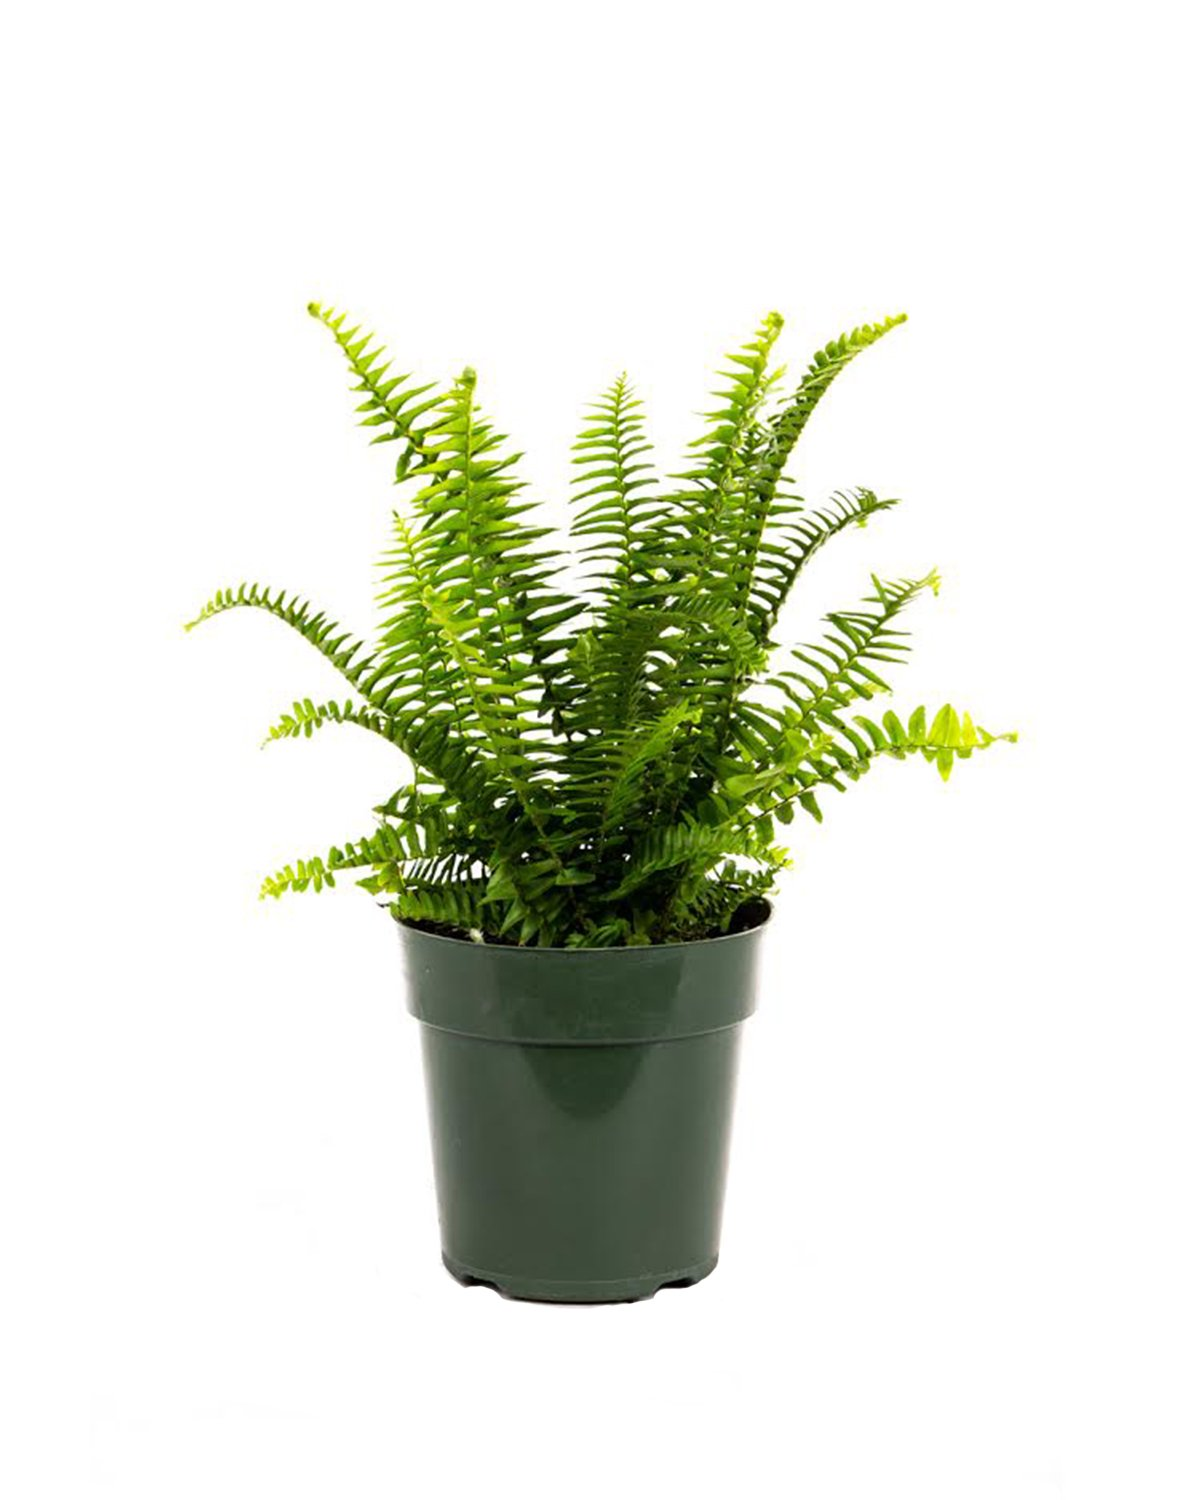 American Plant Exchange Kimberly Queen Fern Live Plant, 1 Gallon, Indoor/Outdoor